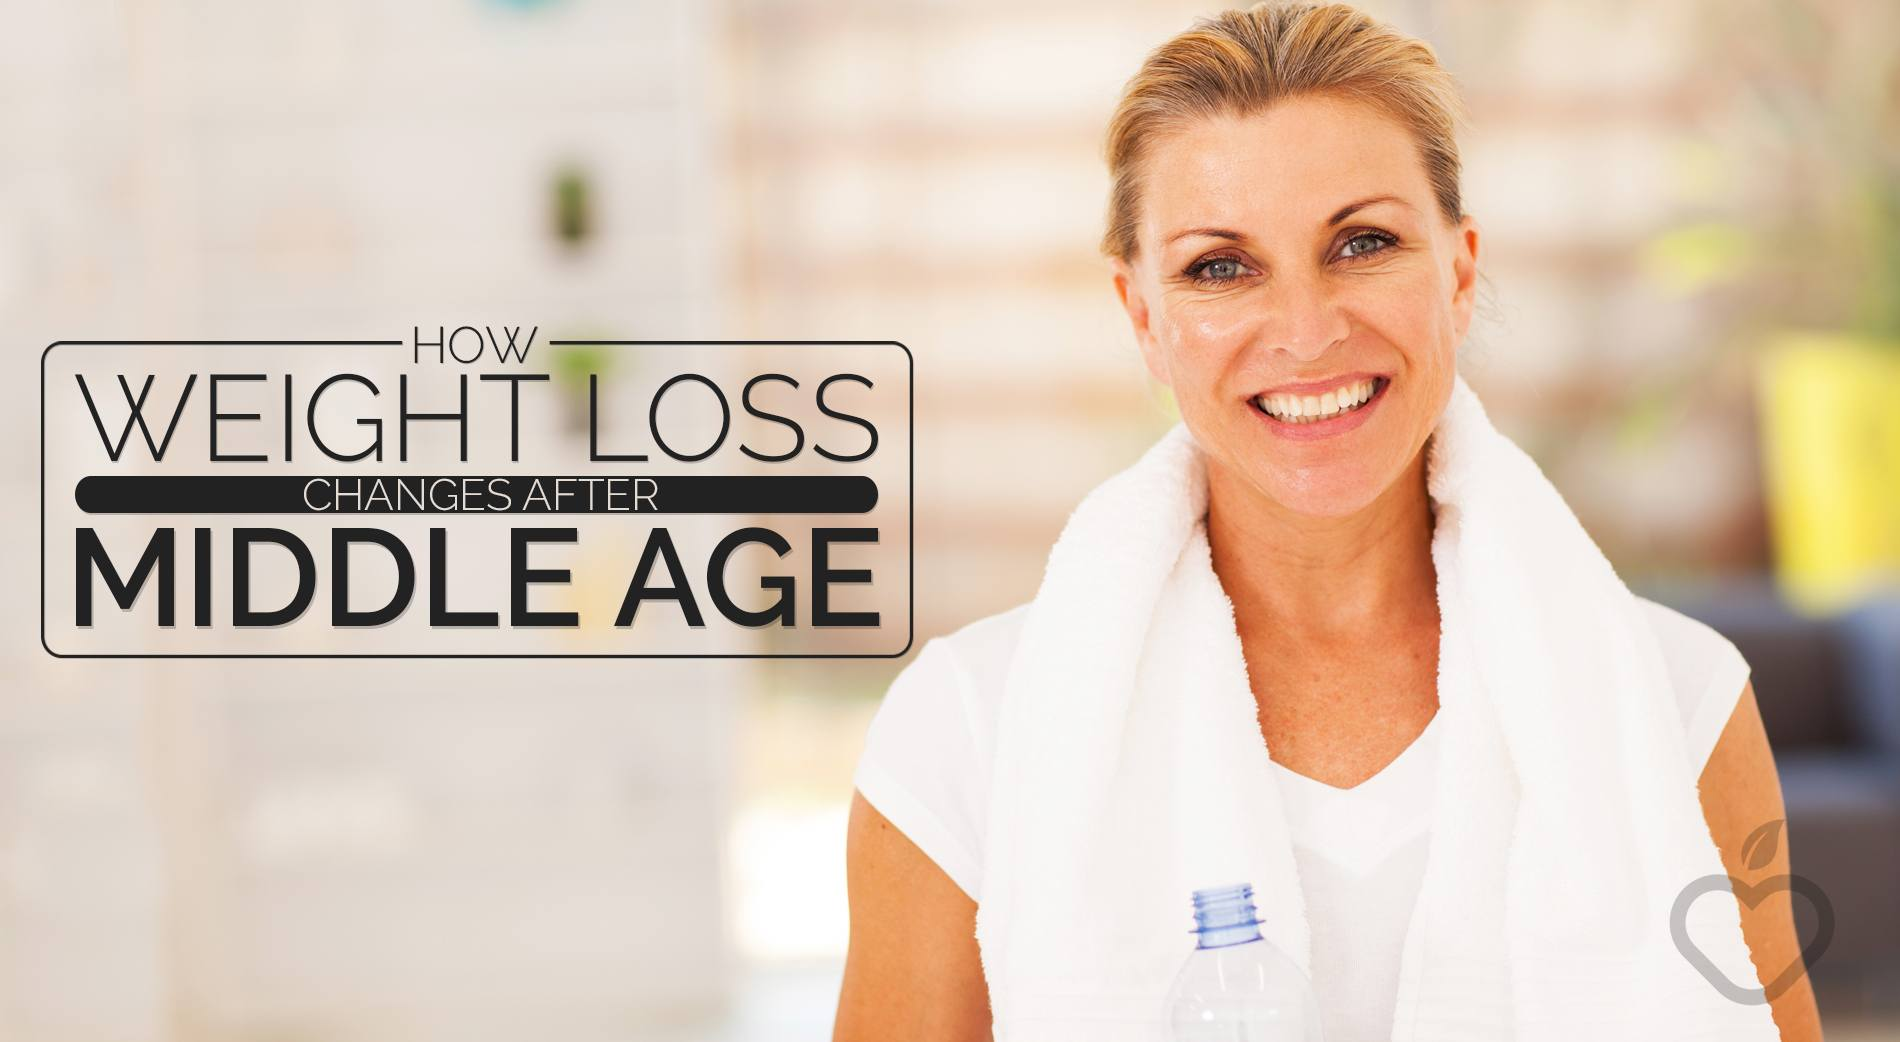 Middle Age Image Design 1 - How Weight Loss Changes After Middle Age